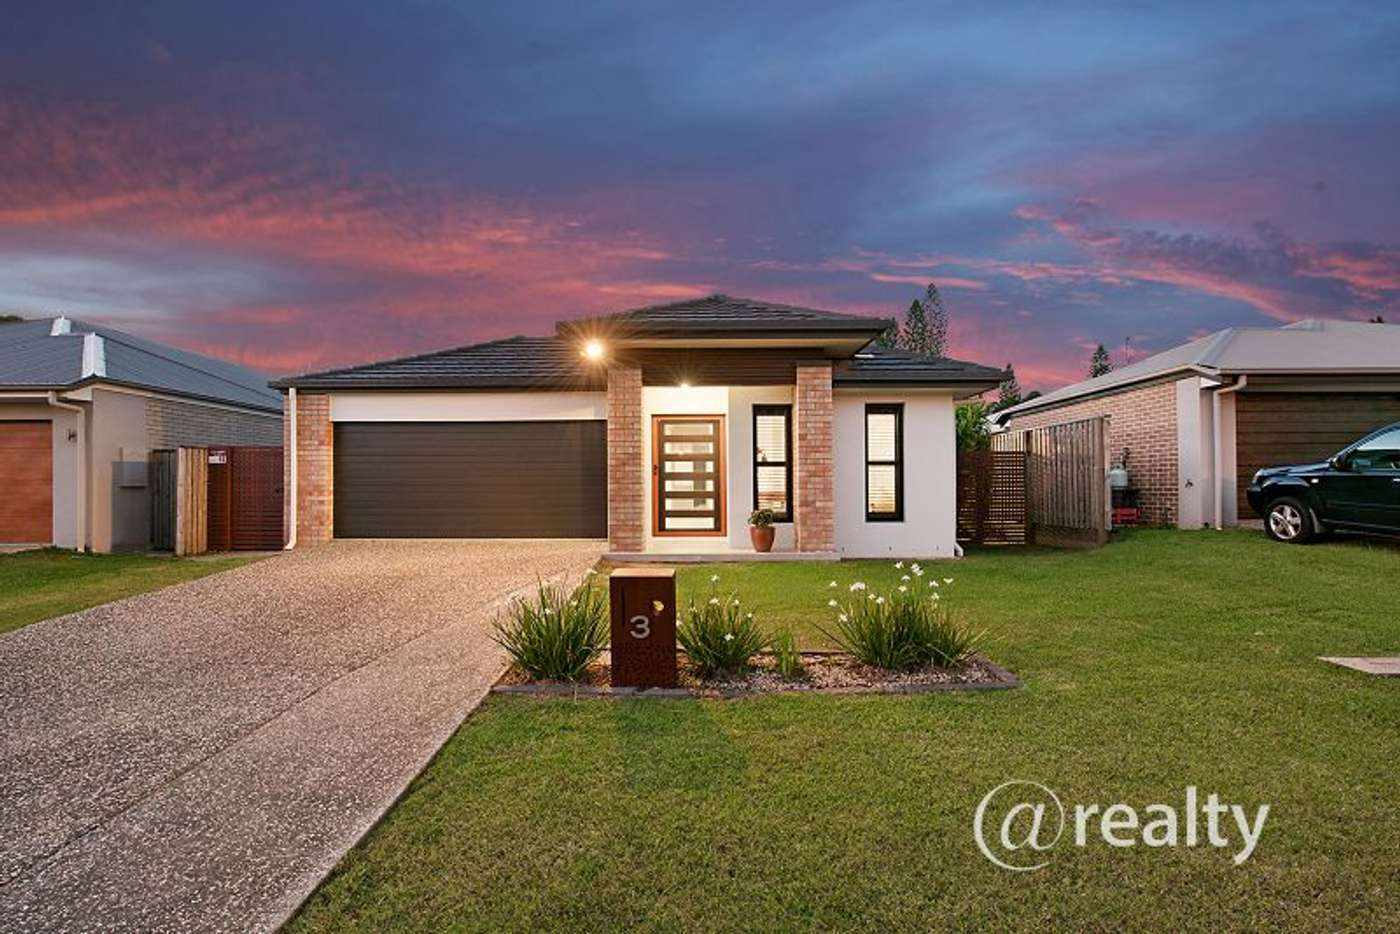 Main view of Homely house listing, 3 Riverside Circuit, Joyner QLD 4500